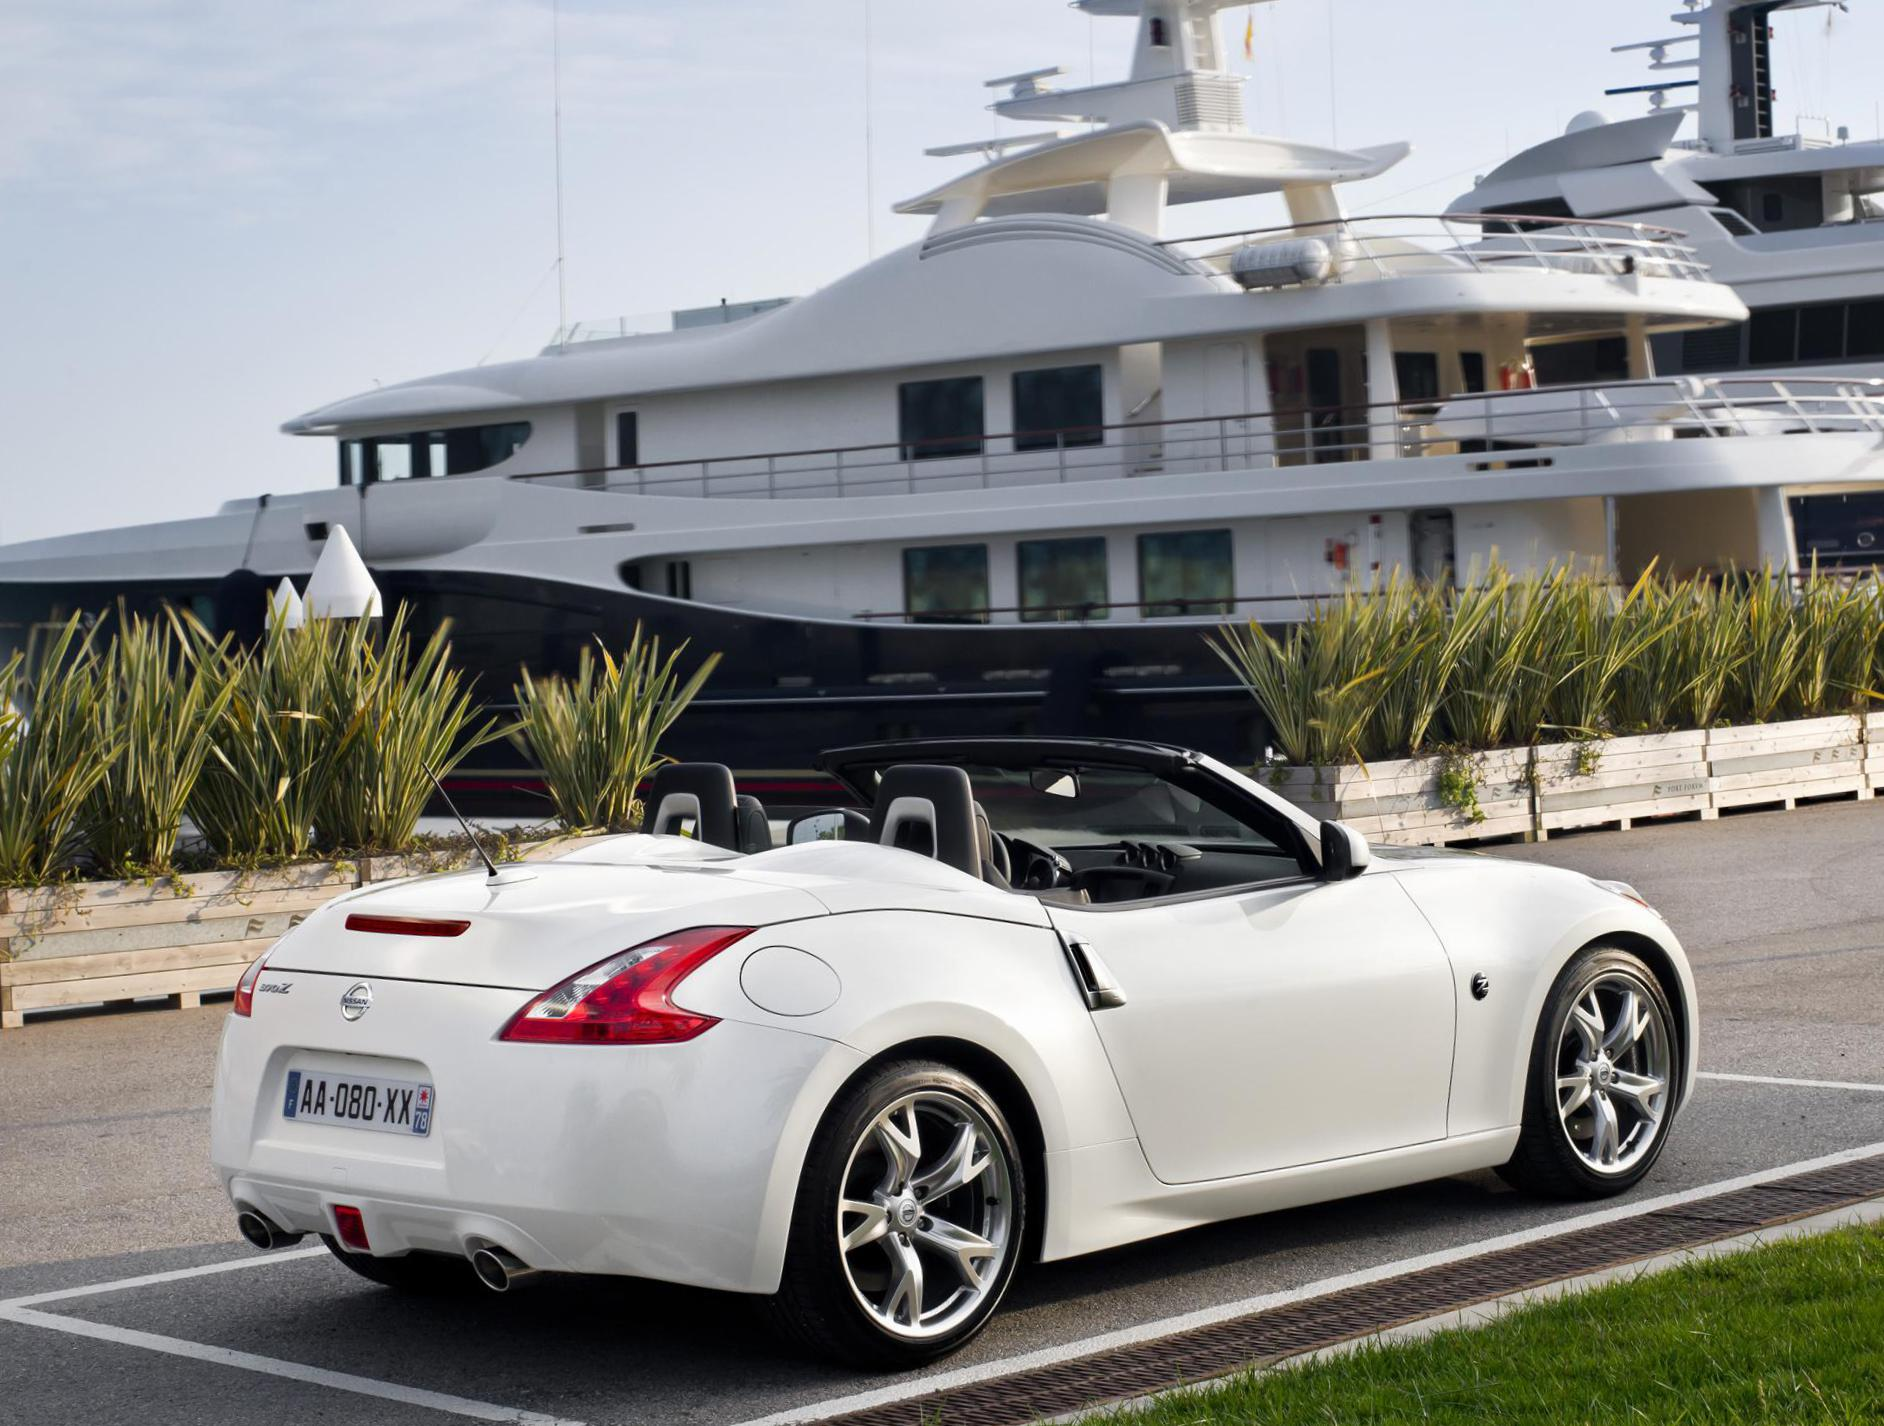 370Z Roadster Nissan approved sedan